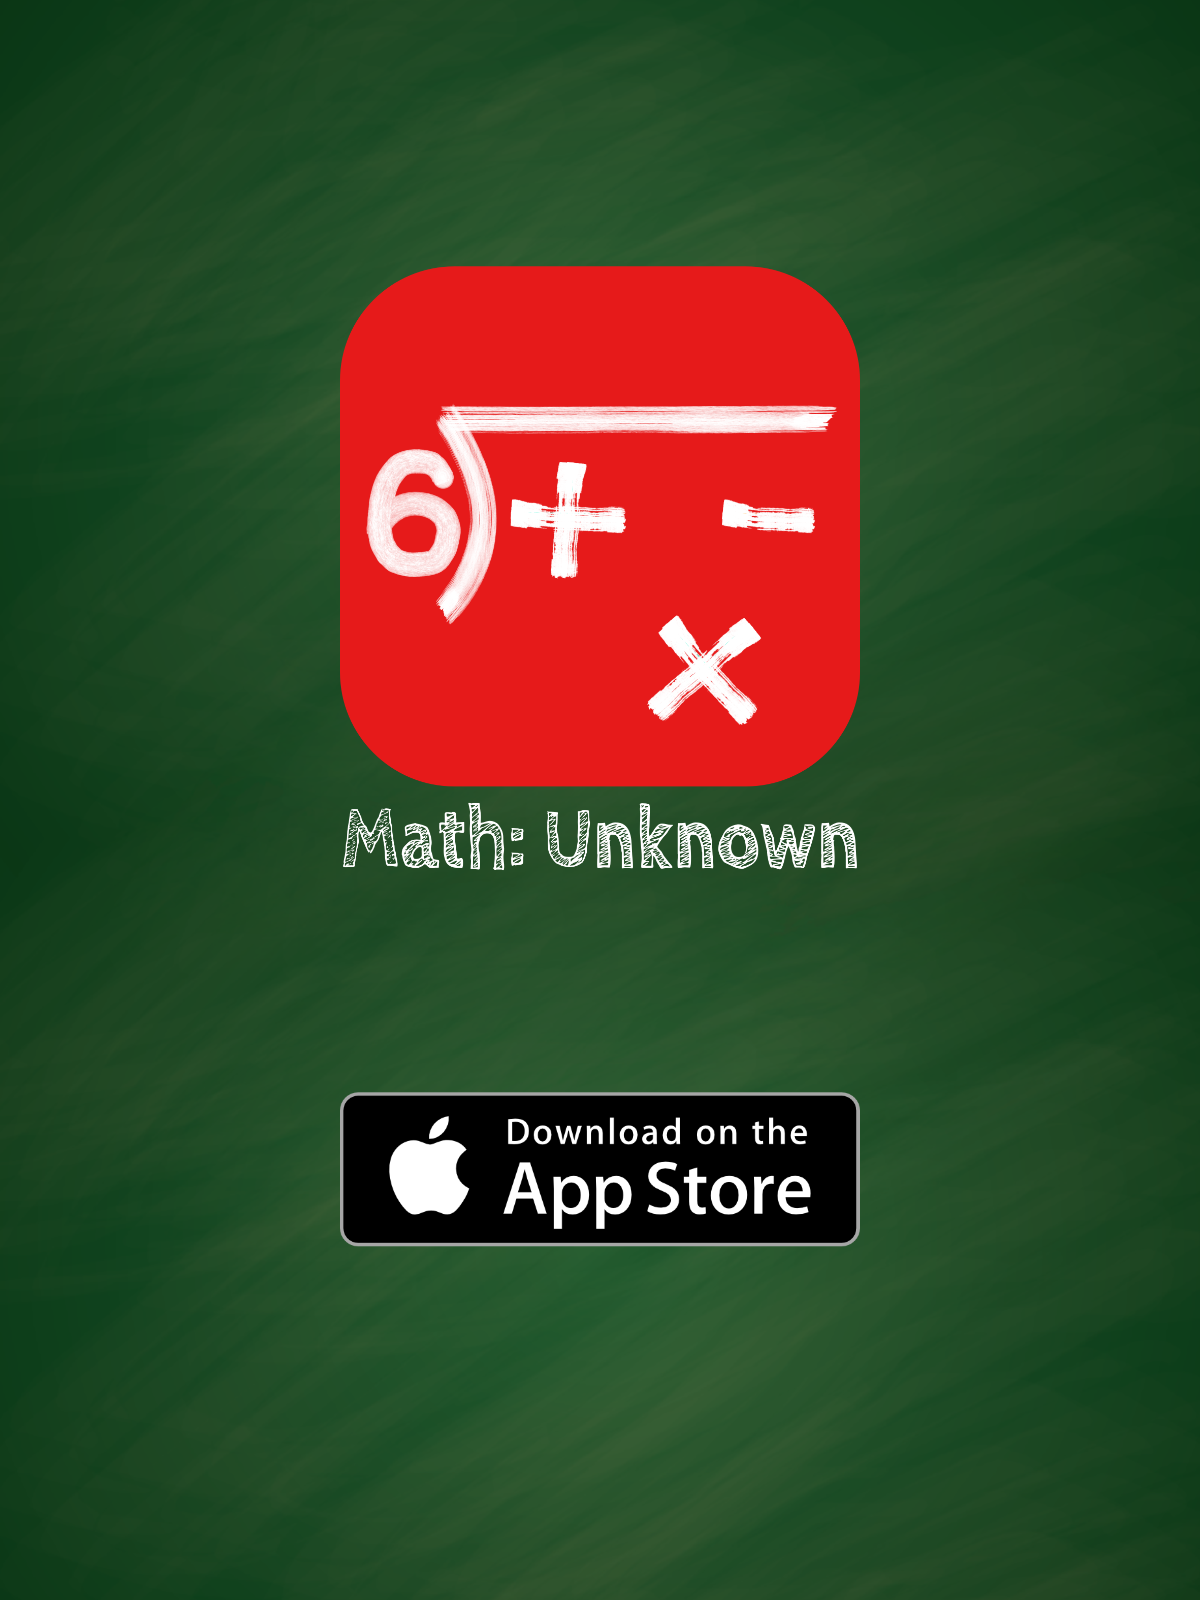 Math: Unknown